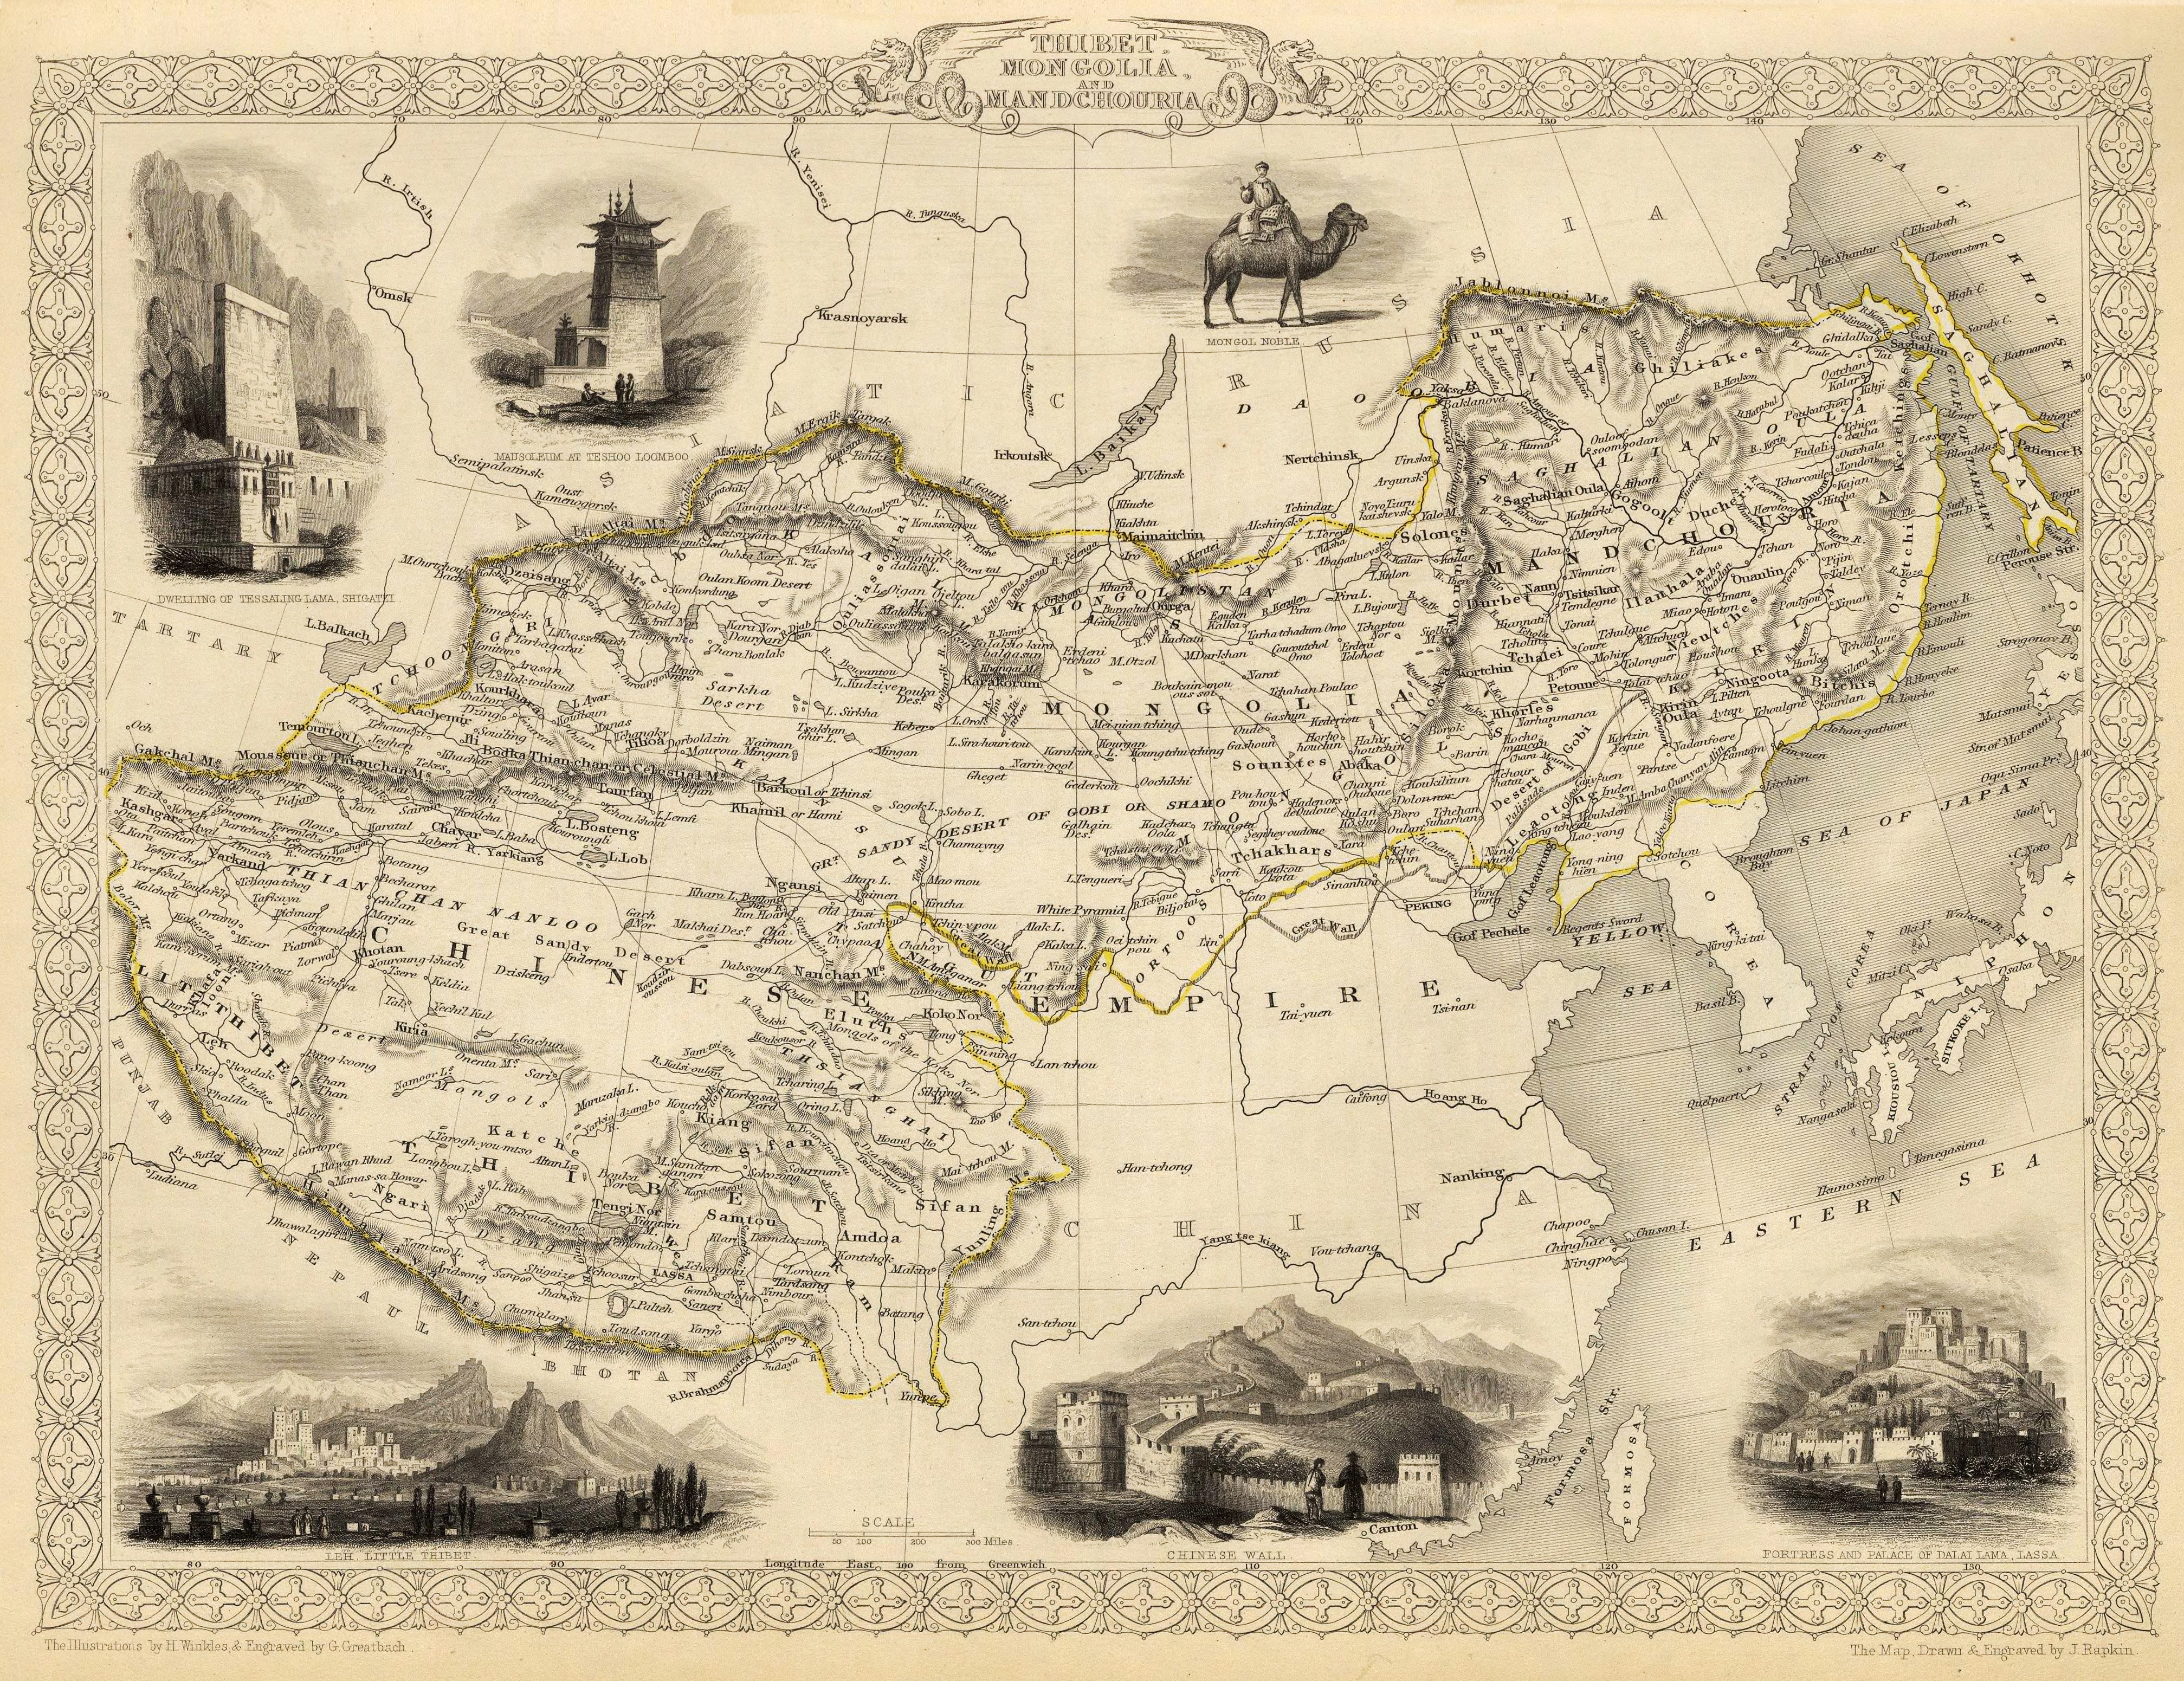 Old map of Tibet. (Source: Wikimedia Commons)